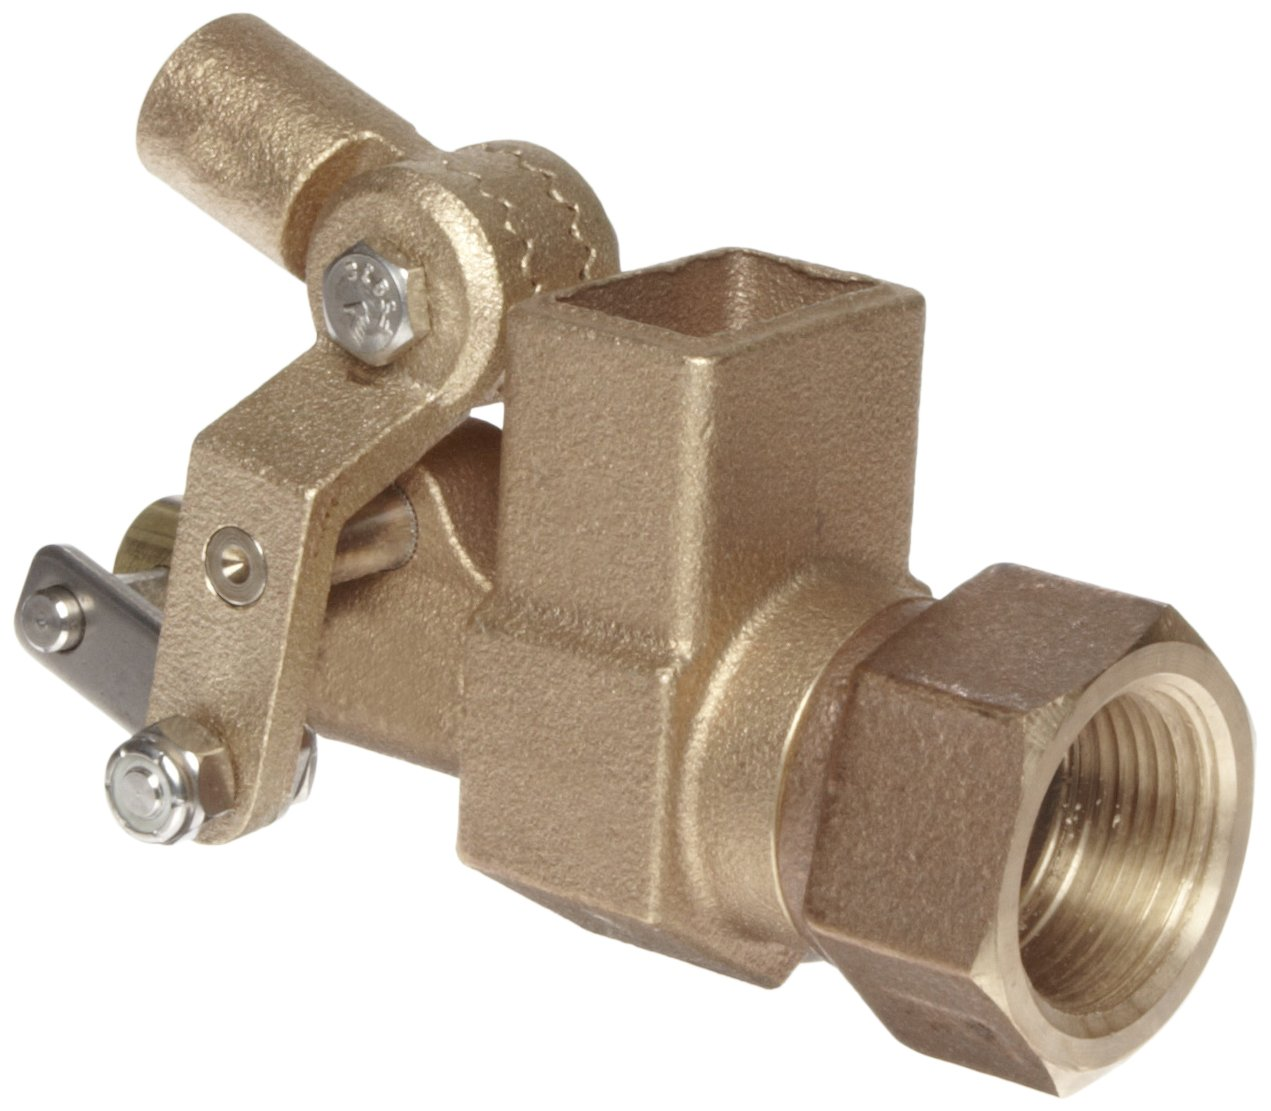 Robert Manufacturing RF605T High Turbo Series Bob Red Brass Float Valve, 1'' NPT Female Inlet x FreeFlow Outlet, 110 gpm at 85 psi Pressure